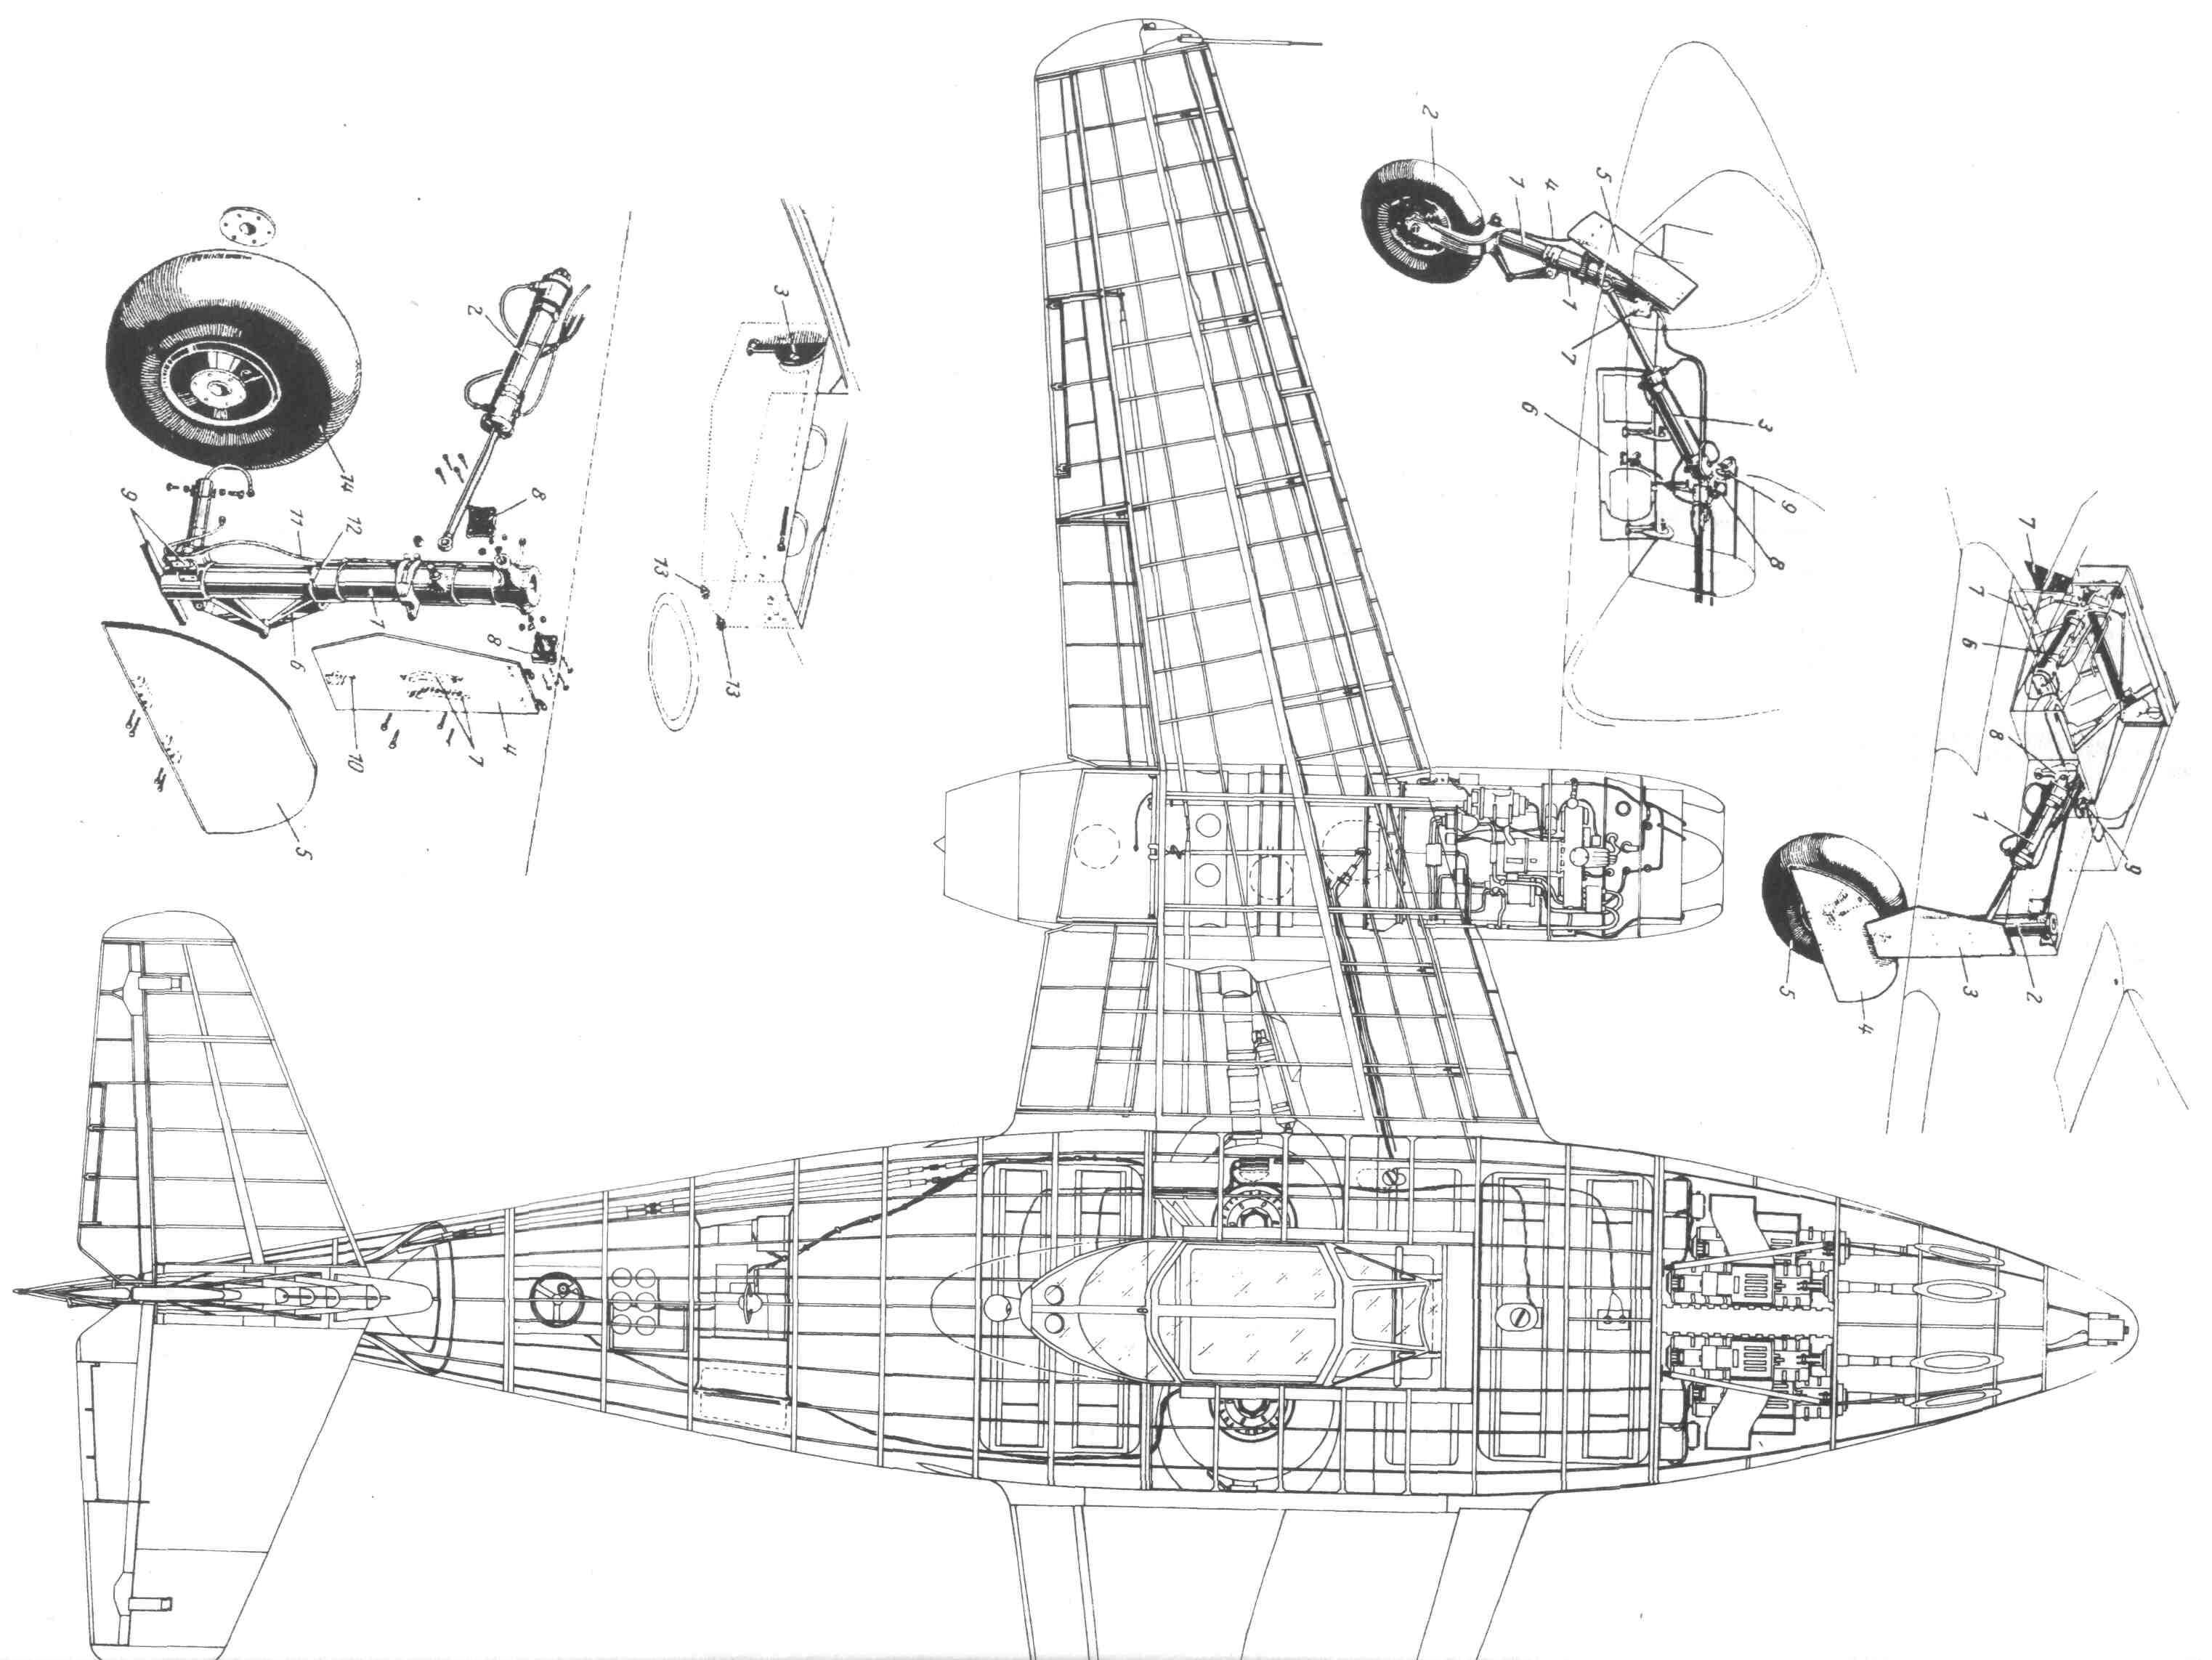 F14 Detail Gearnose additionally Morane Saulnier N moreover G Hook And The Flying Bananas together with Voltron additionally Permit Class Submarine Variants. on cutaway drawing